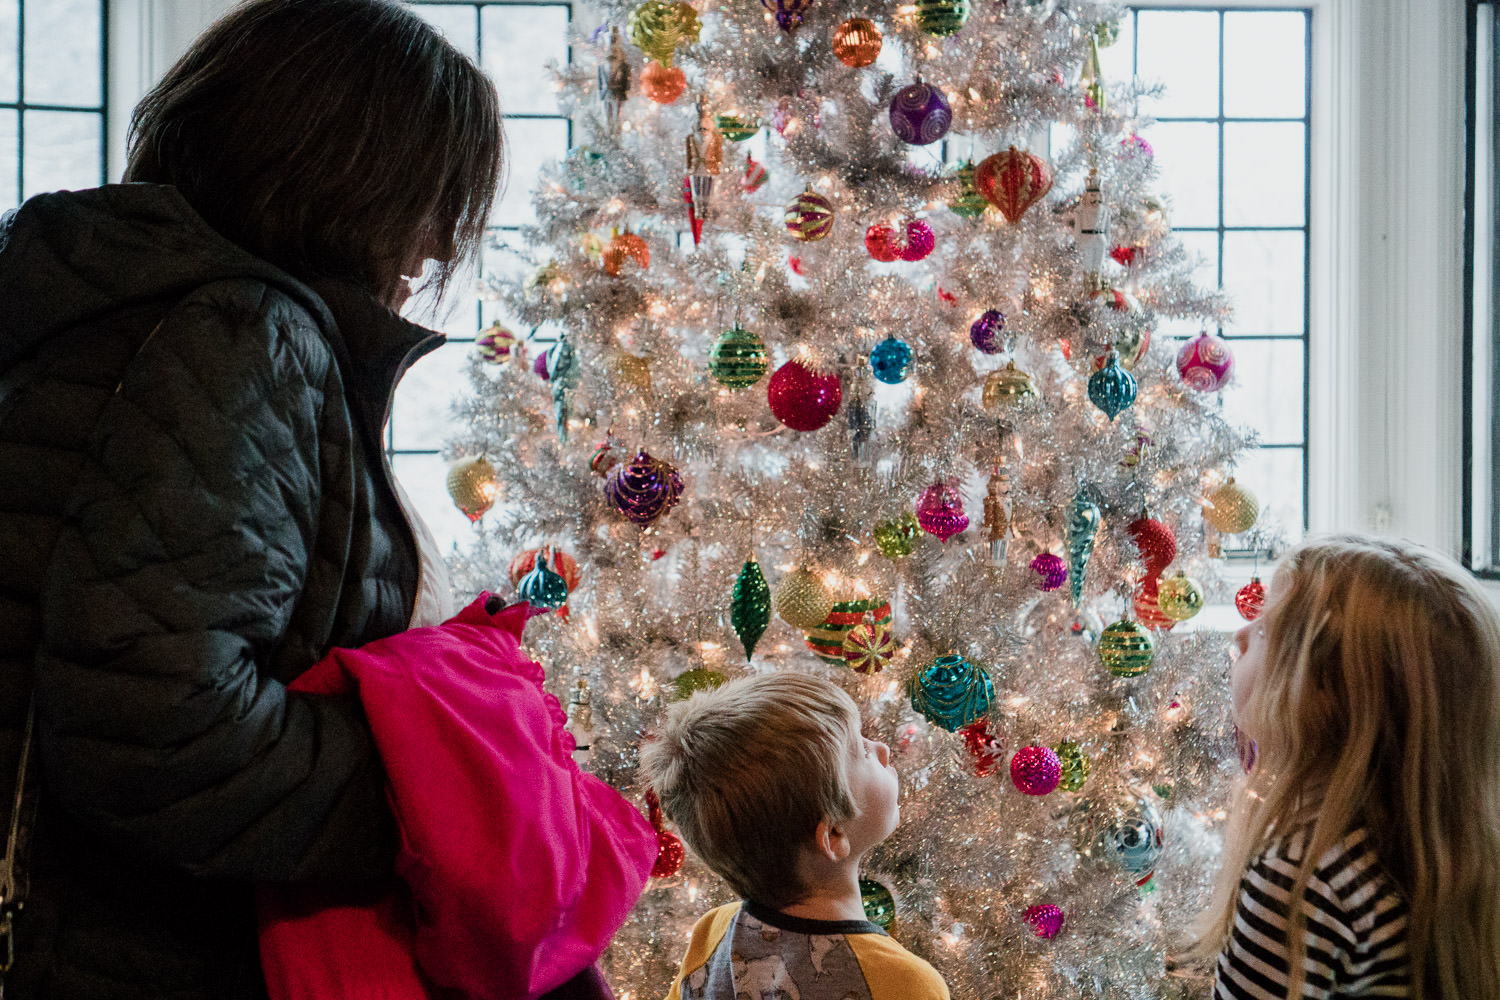 Two children and their grandmother admire one of the Christmas trees at Coe House.